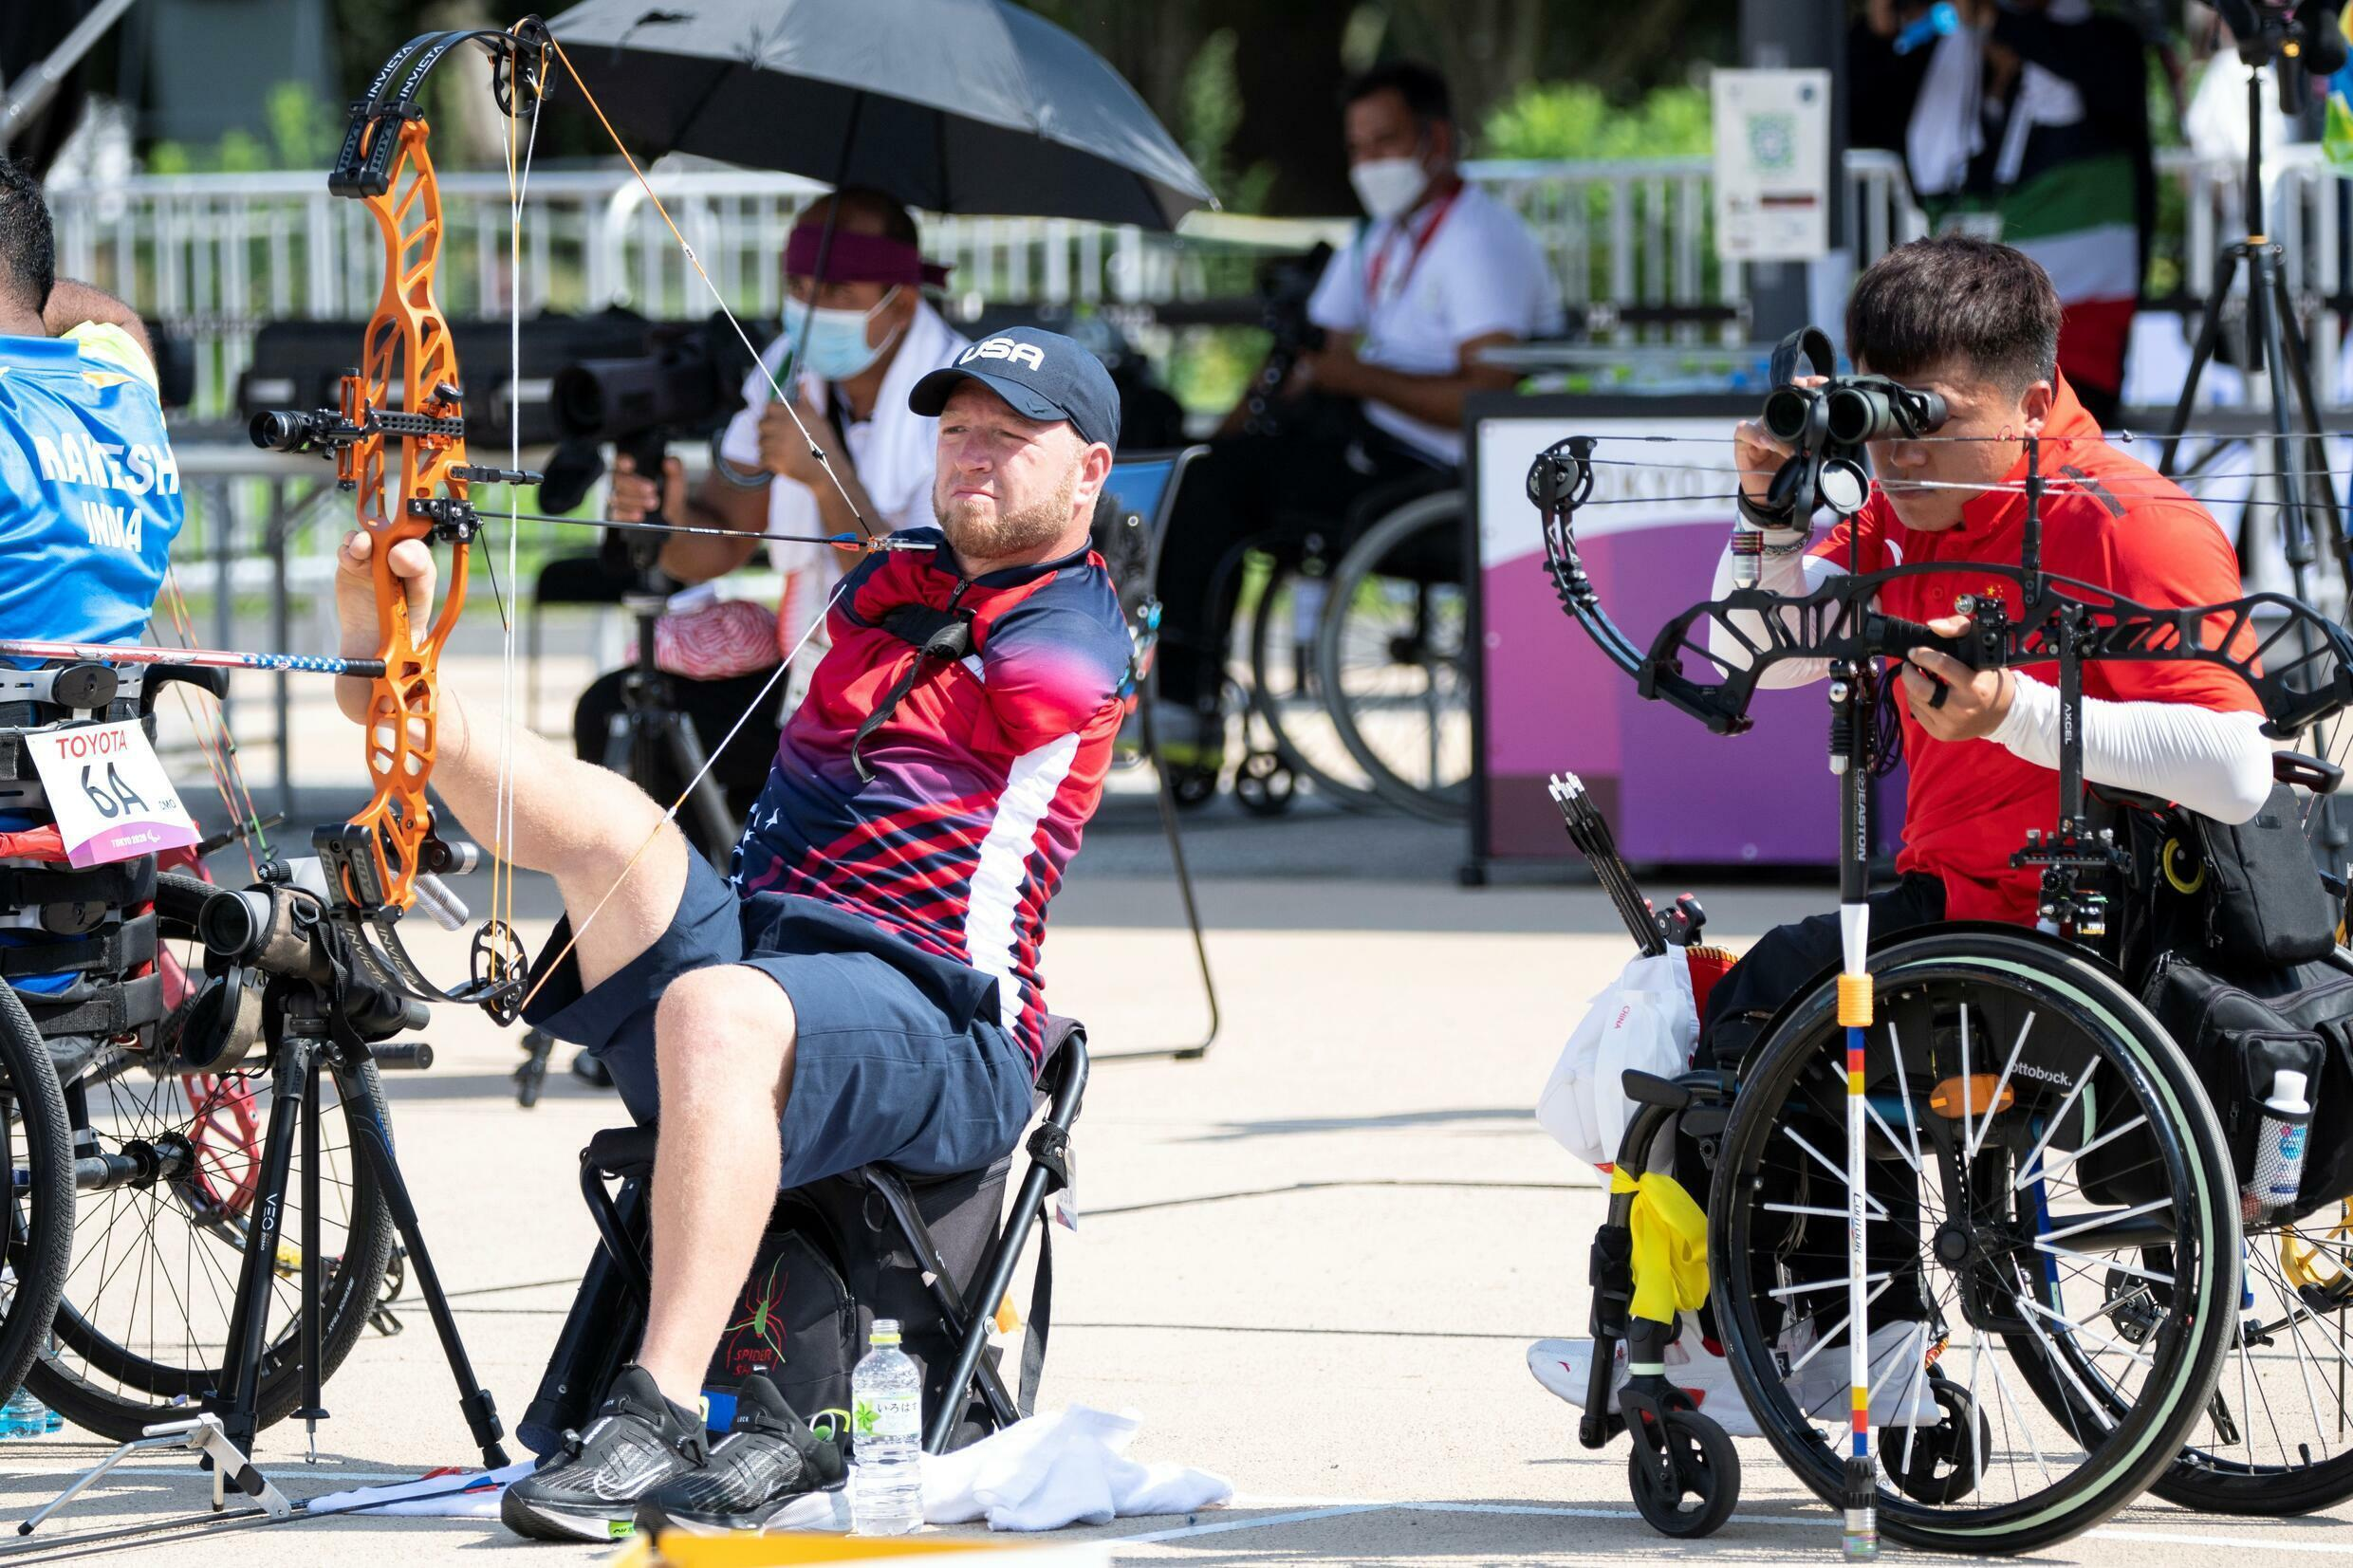 USA's Matt Stutzman (L) and China's Ai Xinliang (R) compete in the men's archery individual ranking round during the Tokyo 2020 Paralympic Games at the Yumenoshima Park archery field in Tokyo on August 27, 2021.